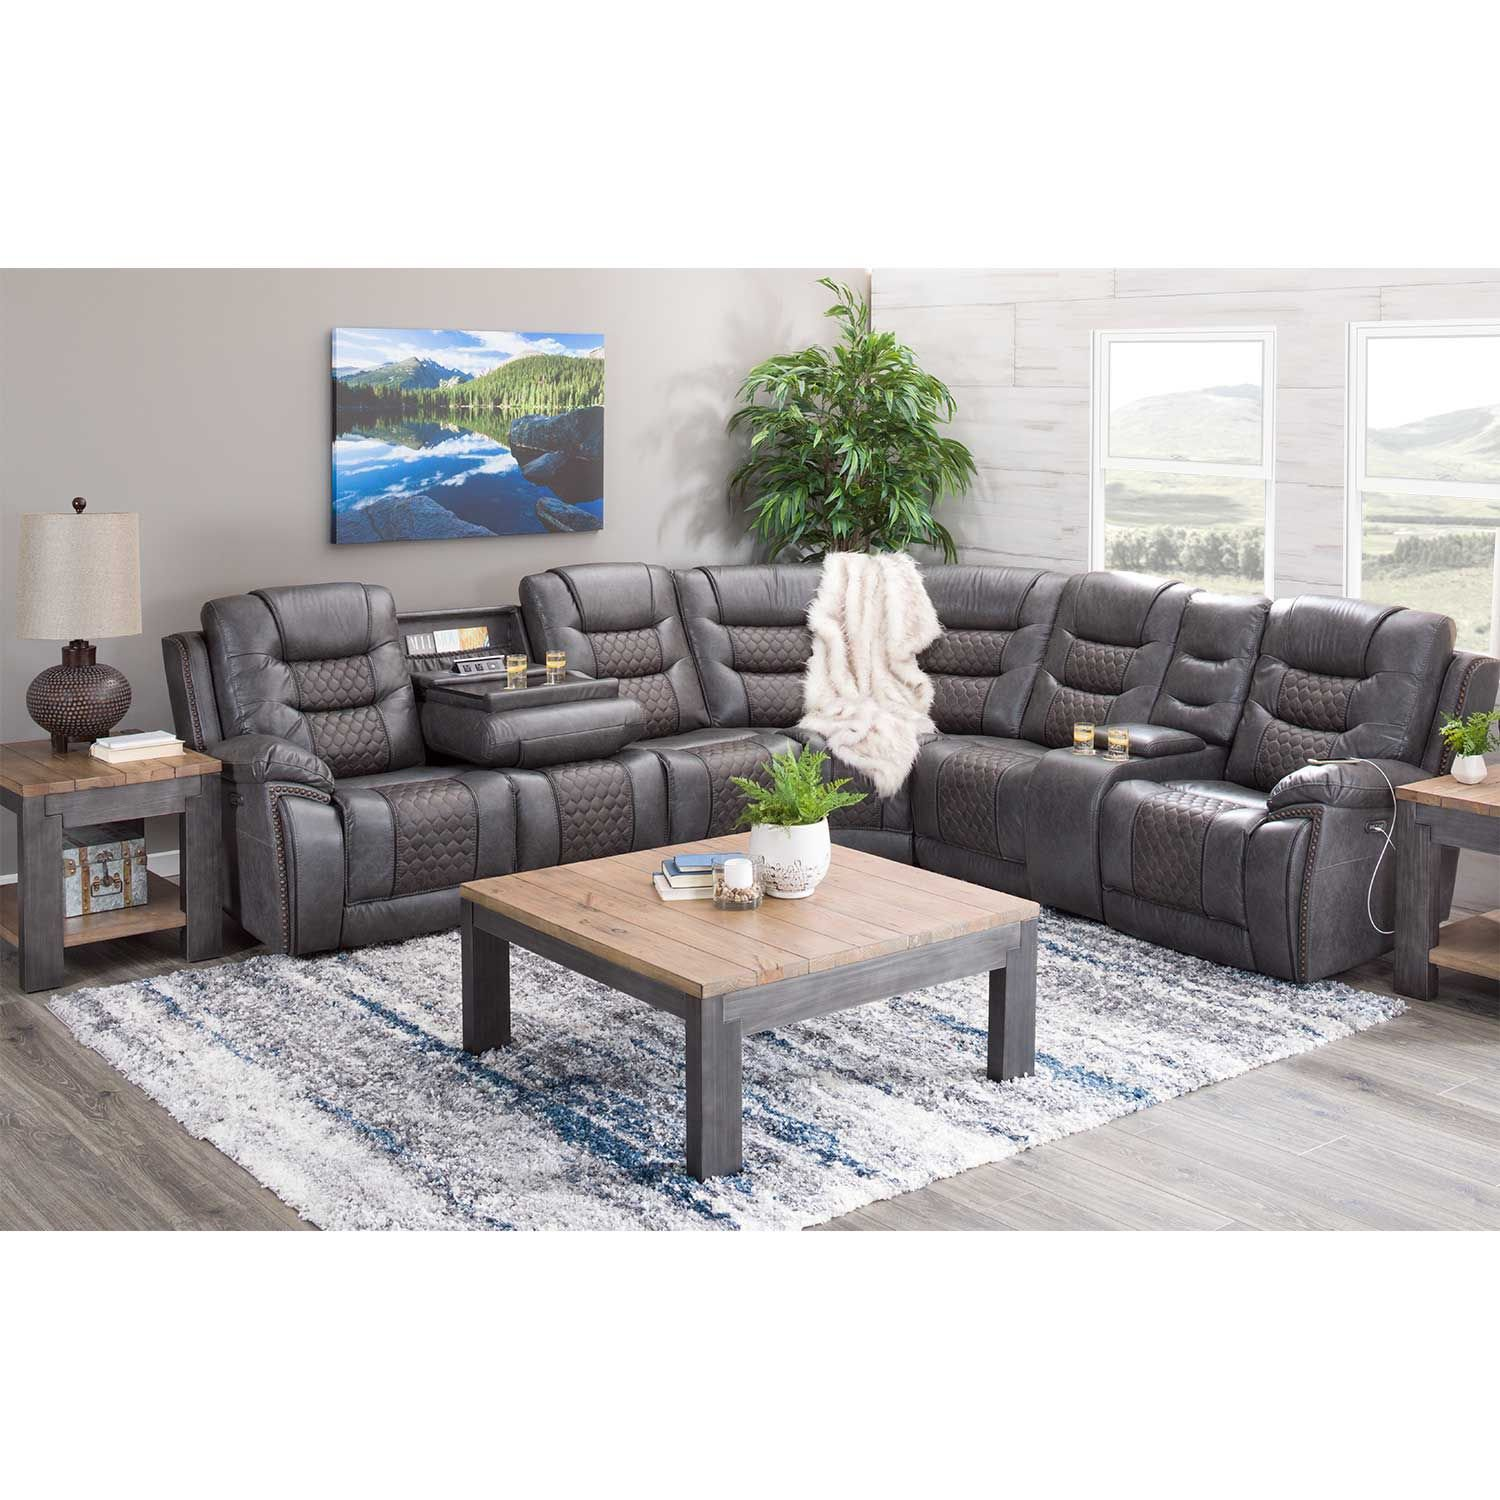 Picture of Tempo 7 Piece Power Reclining Sectional with Adjustable Headrest